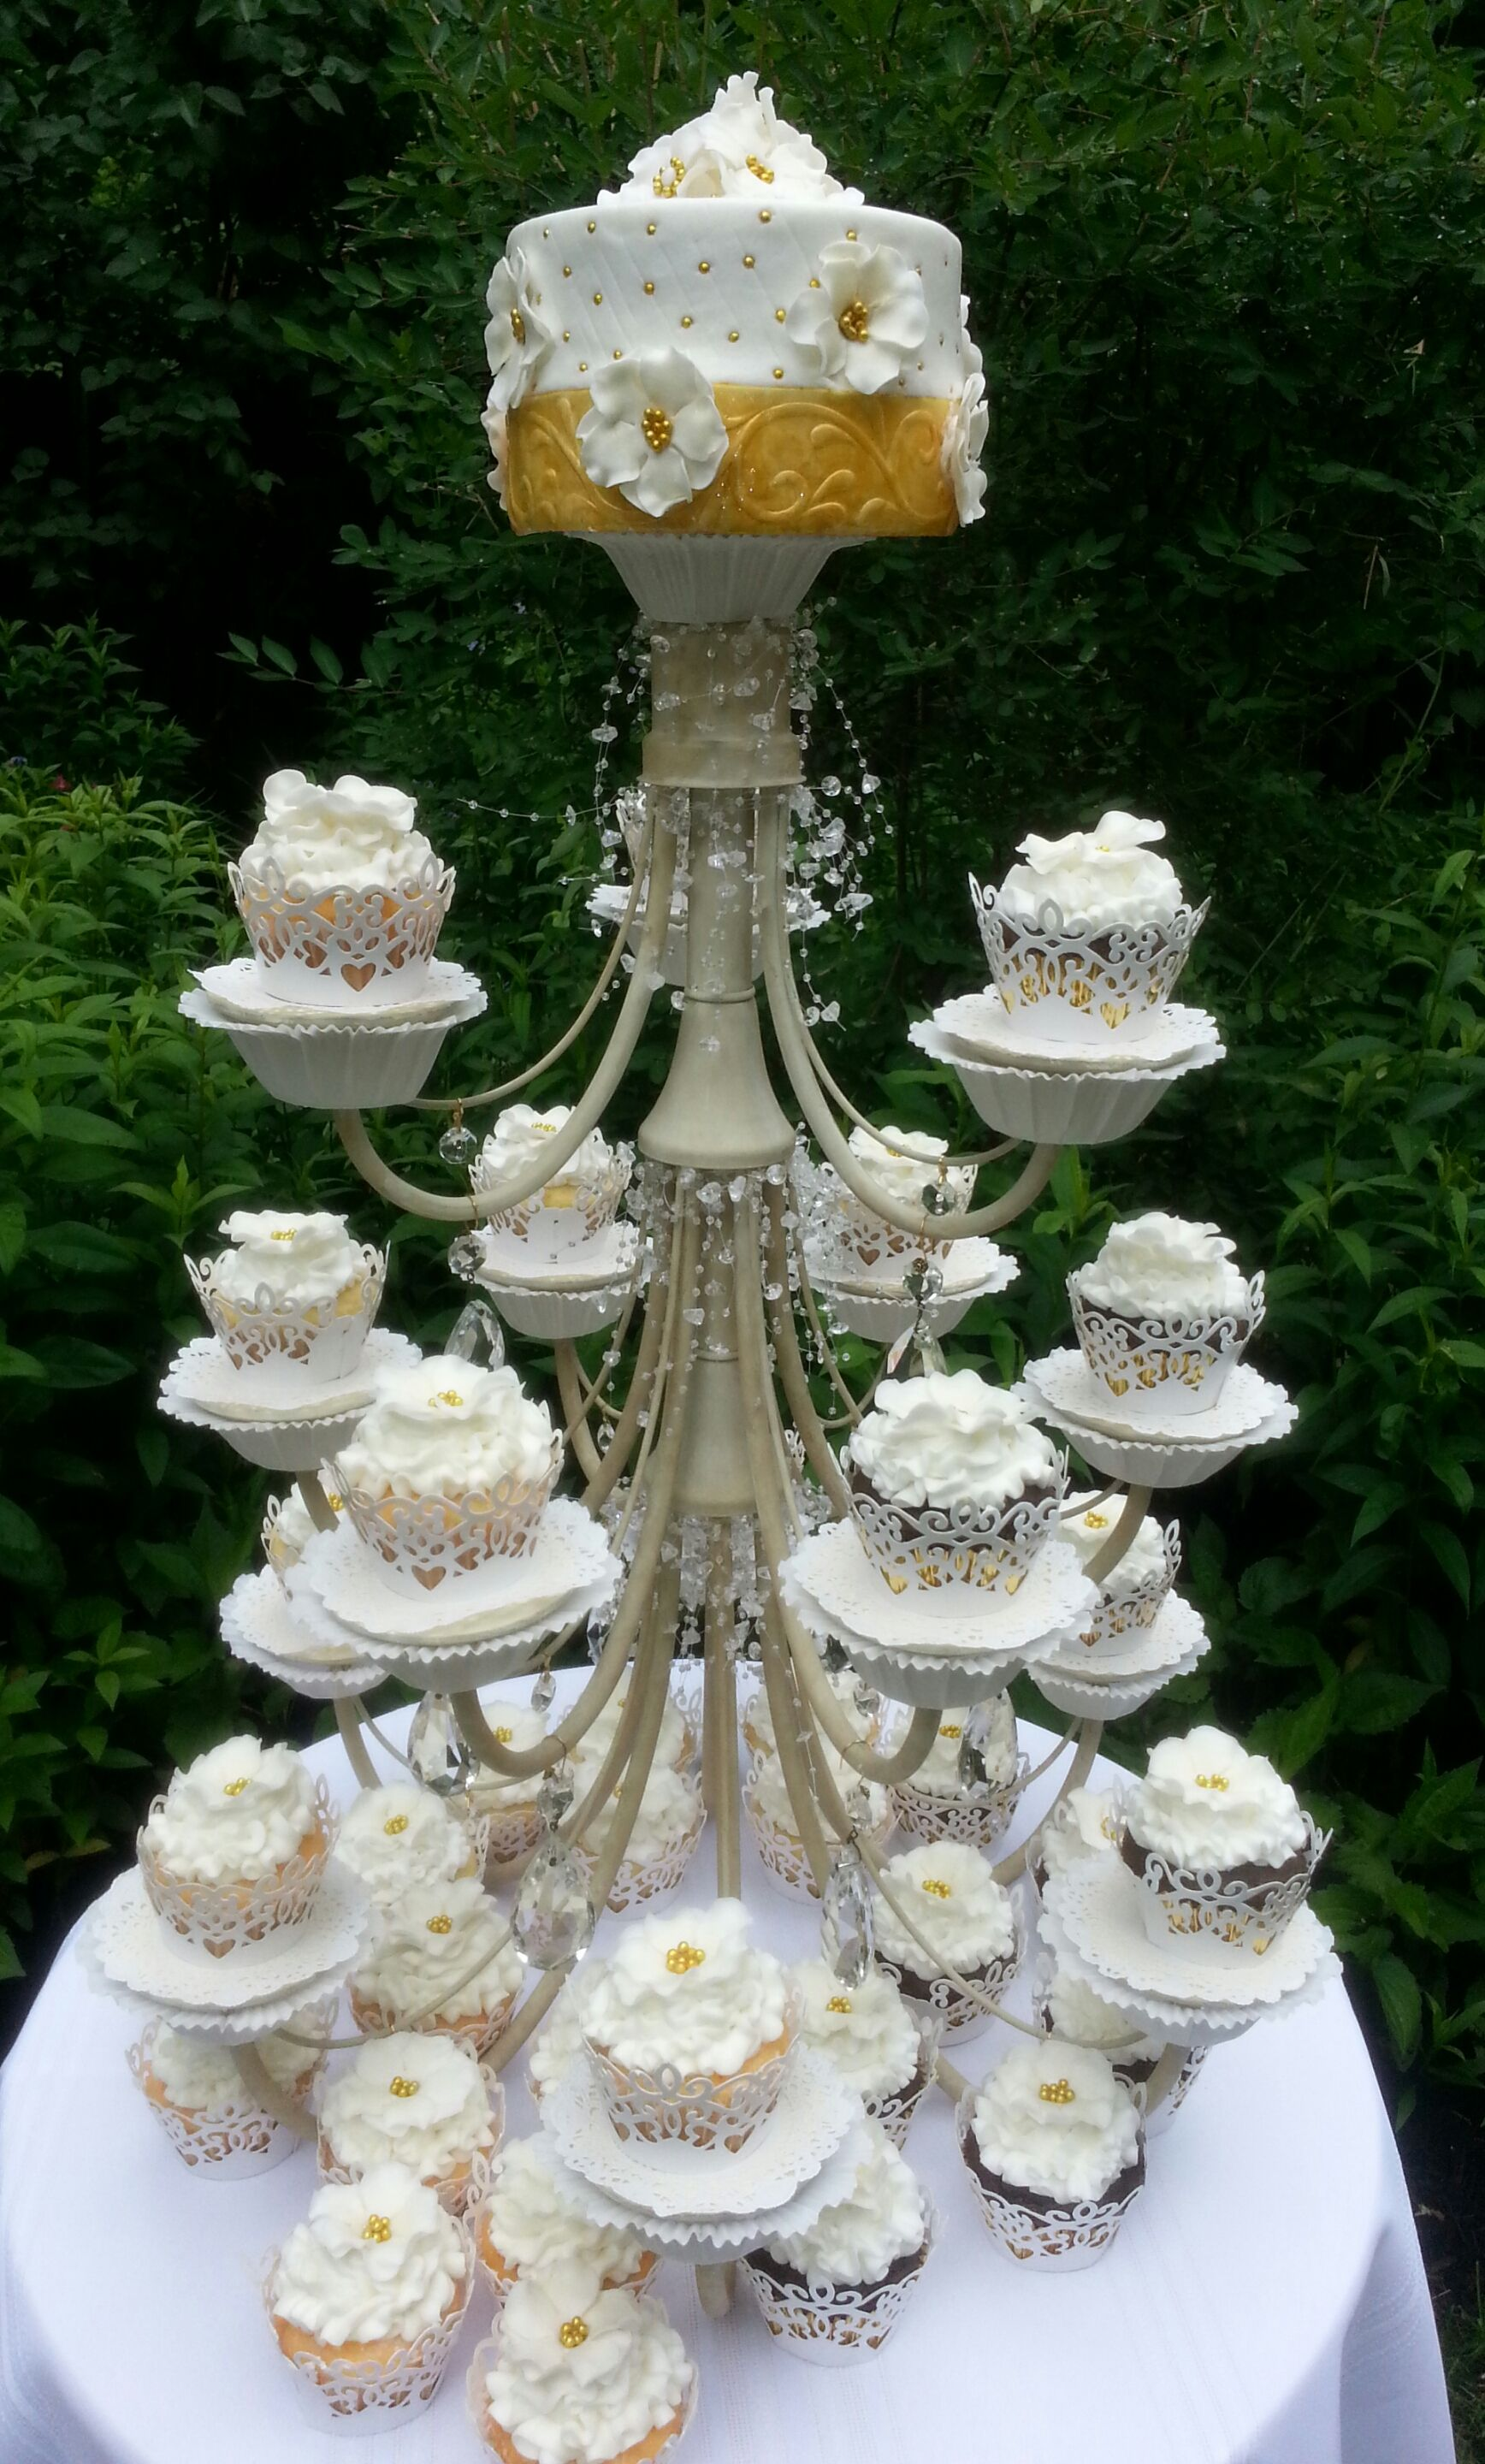 Made from a chandelier this one had 15 arms added chandelier cupcake stand made from a chandilier for a anniversary garden party arubaitofo Image collections